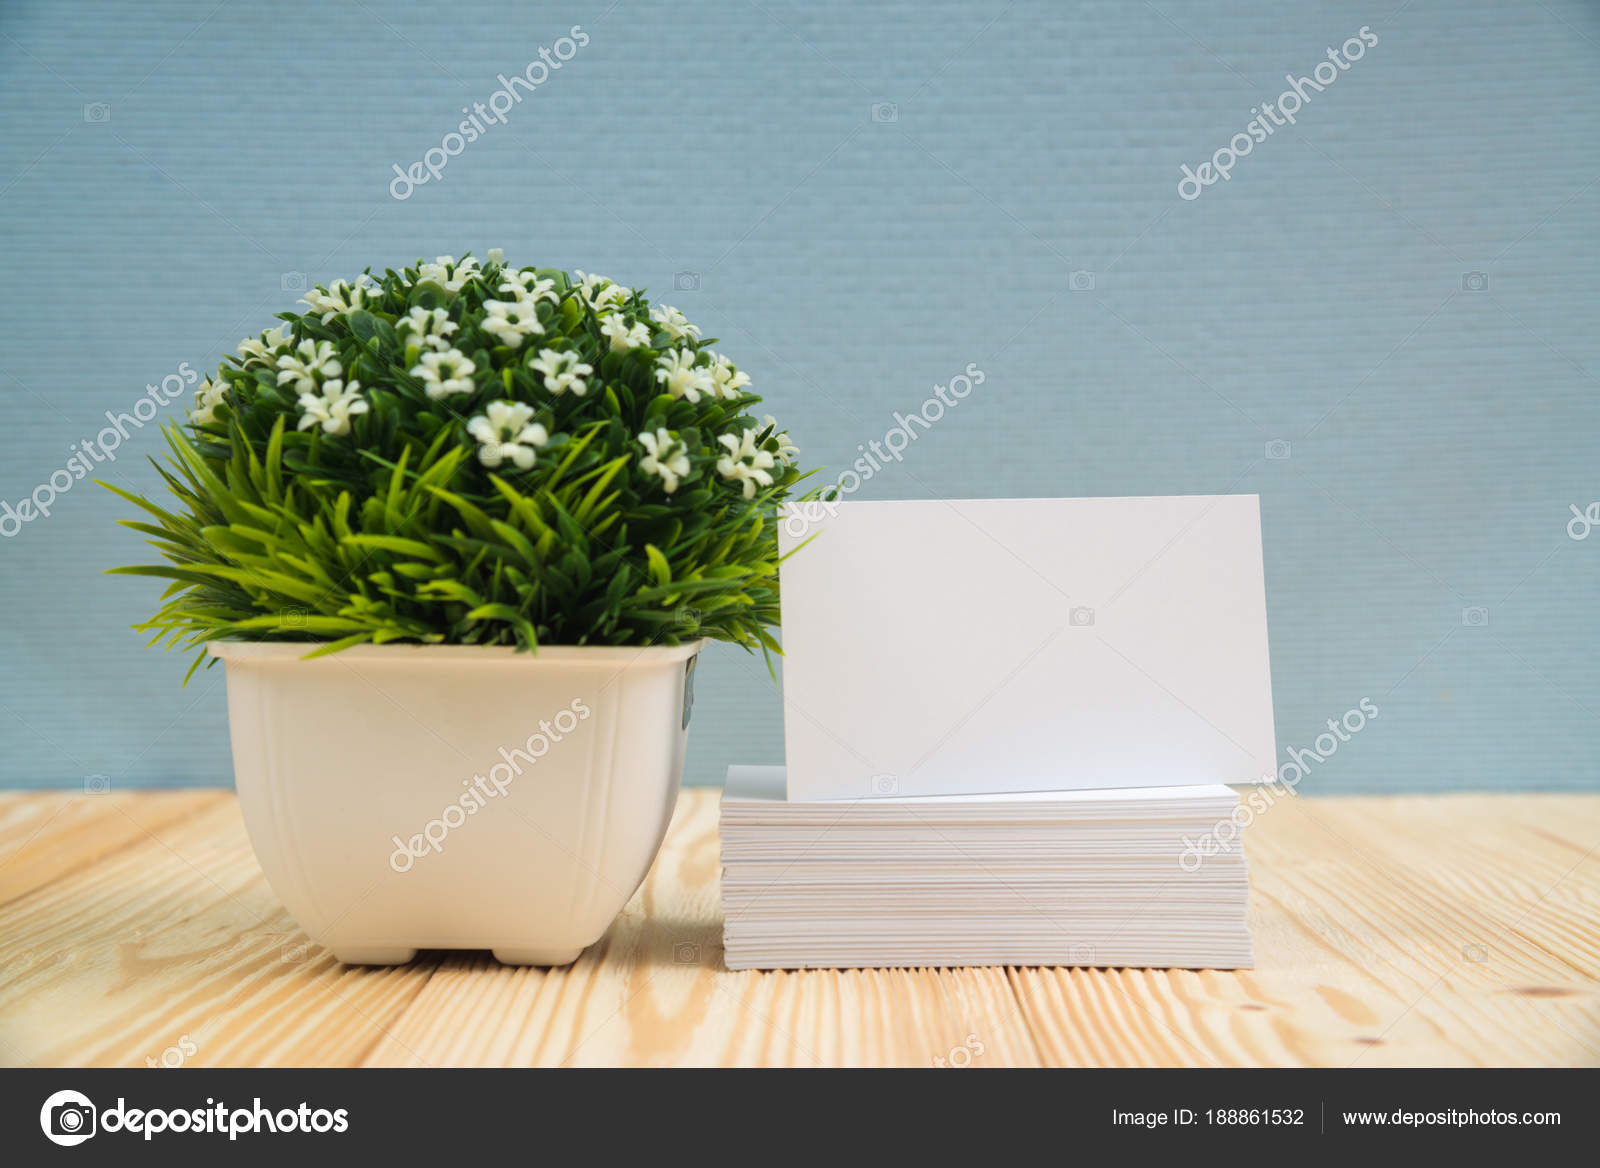 Blank business cards and little decorative tree in white vase on blank business cards and little decorative tree in white vase on wooden working table with copy space for add text id and logo business company concept reheart Image collections